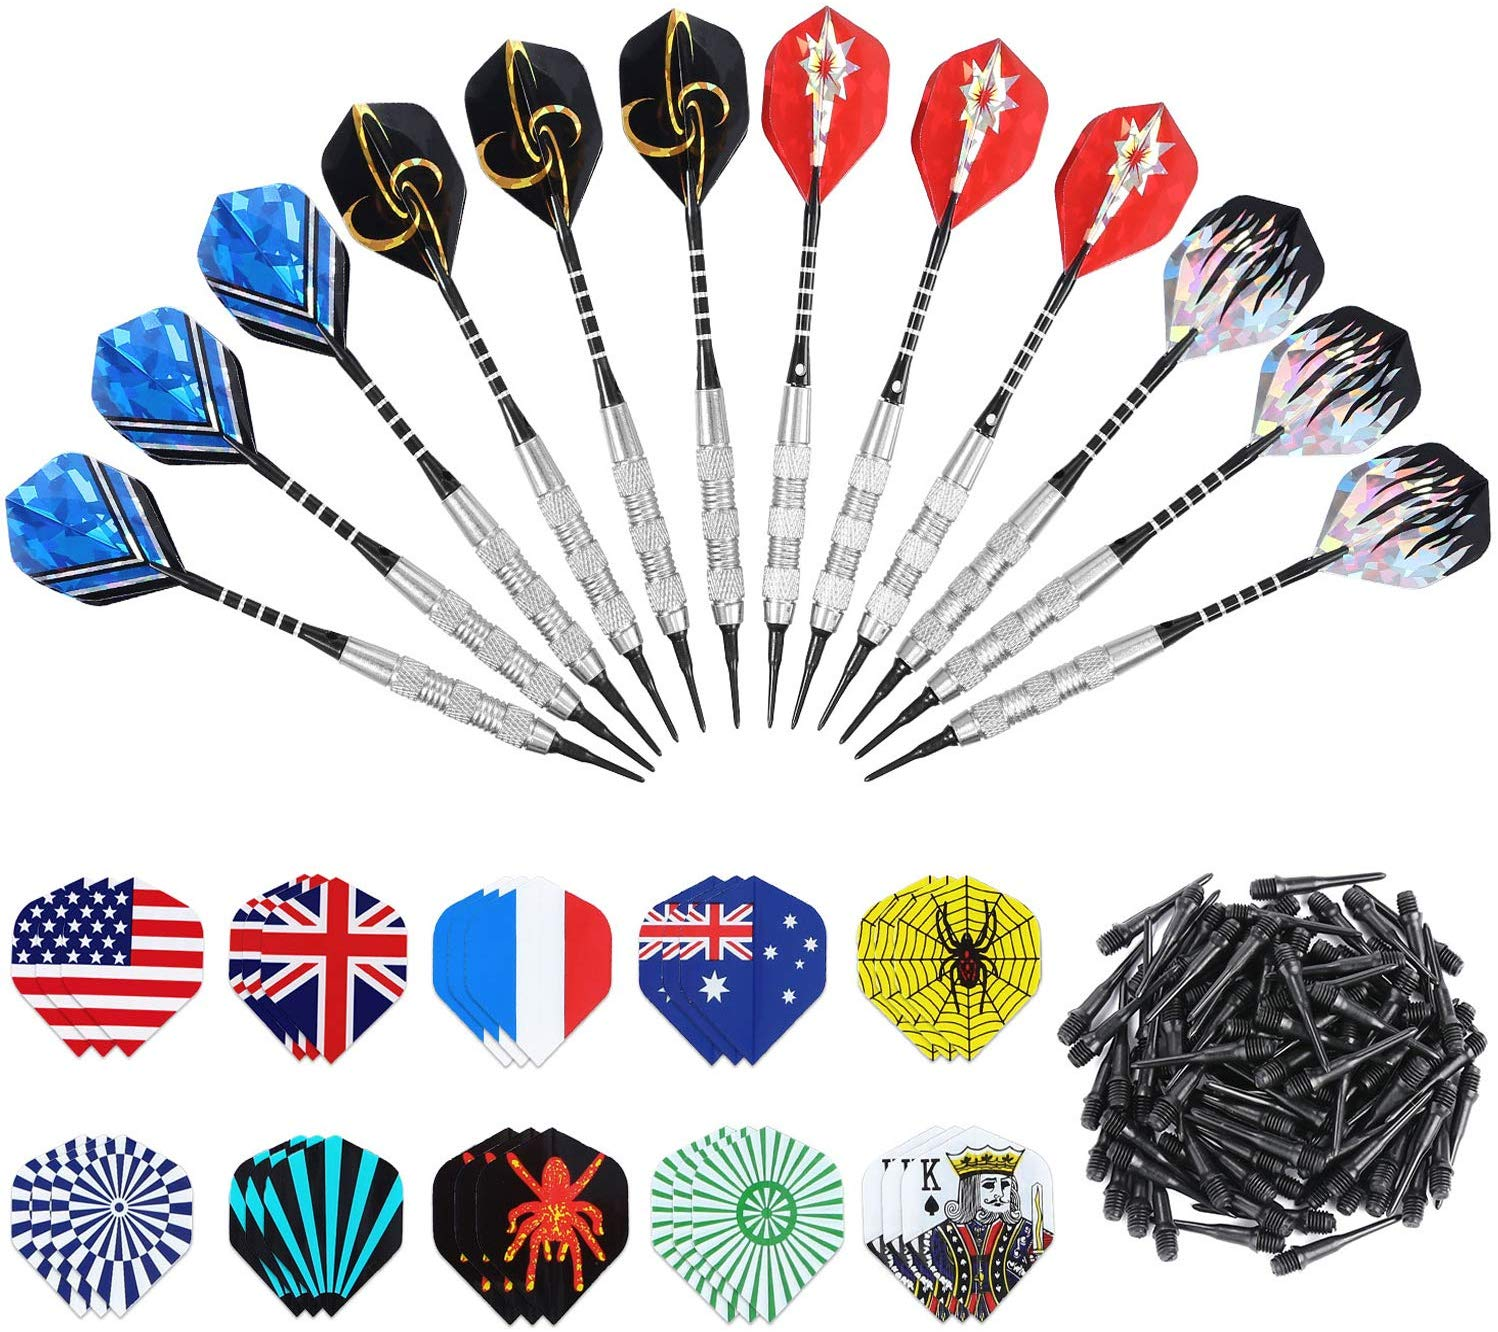 ANSOWNY Soft Tip Darts for Electronic Dartboard, 18 Grams Darts Plastic Tip Sets with Aluminum Shafts, Brass Steel Barrels, 12 Pack + Extra 100 Pcs Dart Tips & 30 Dart Flights